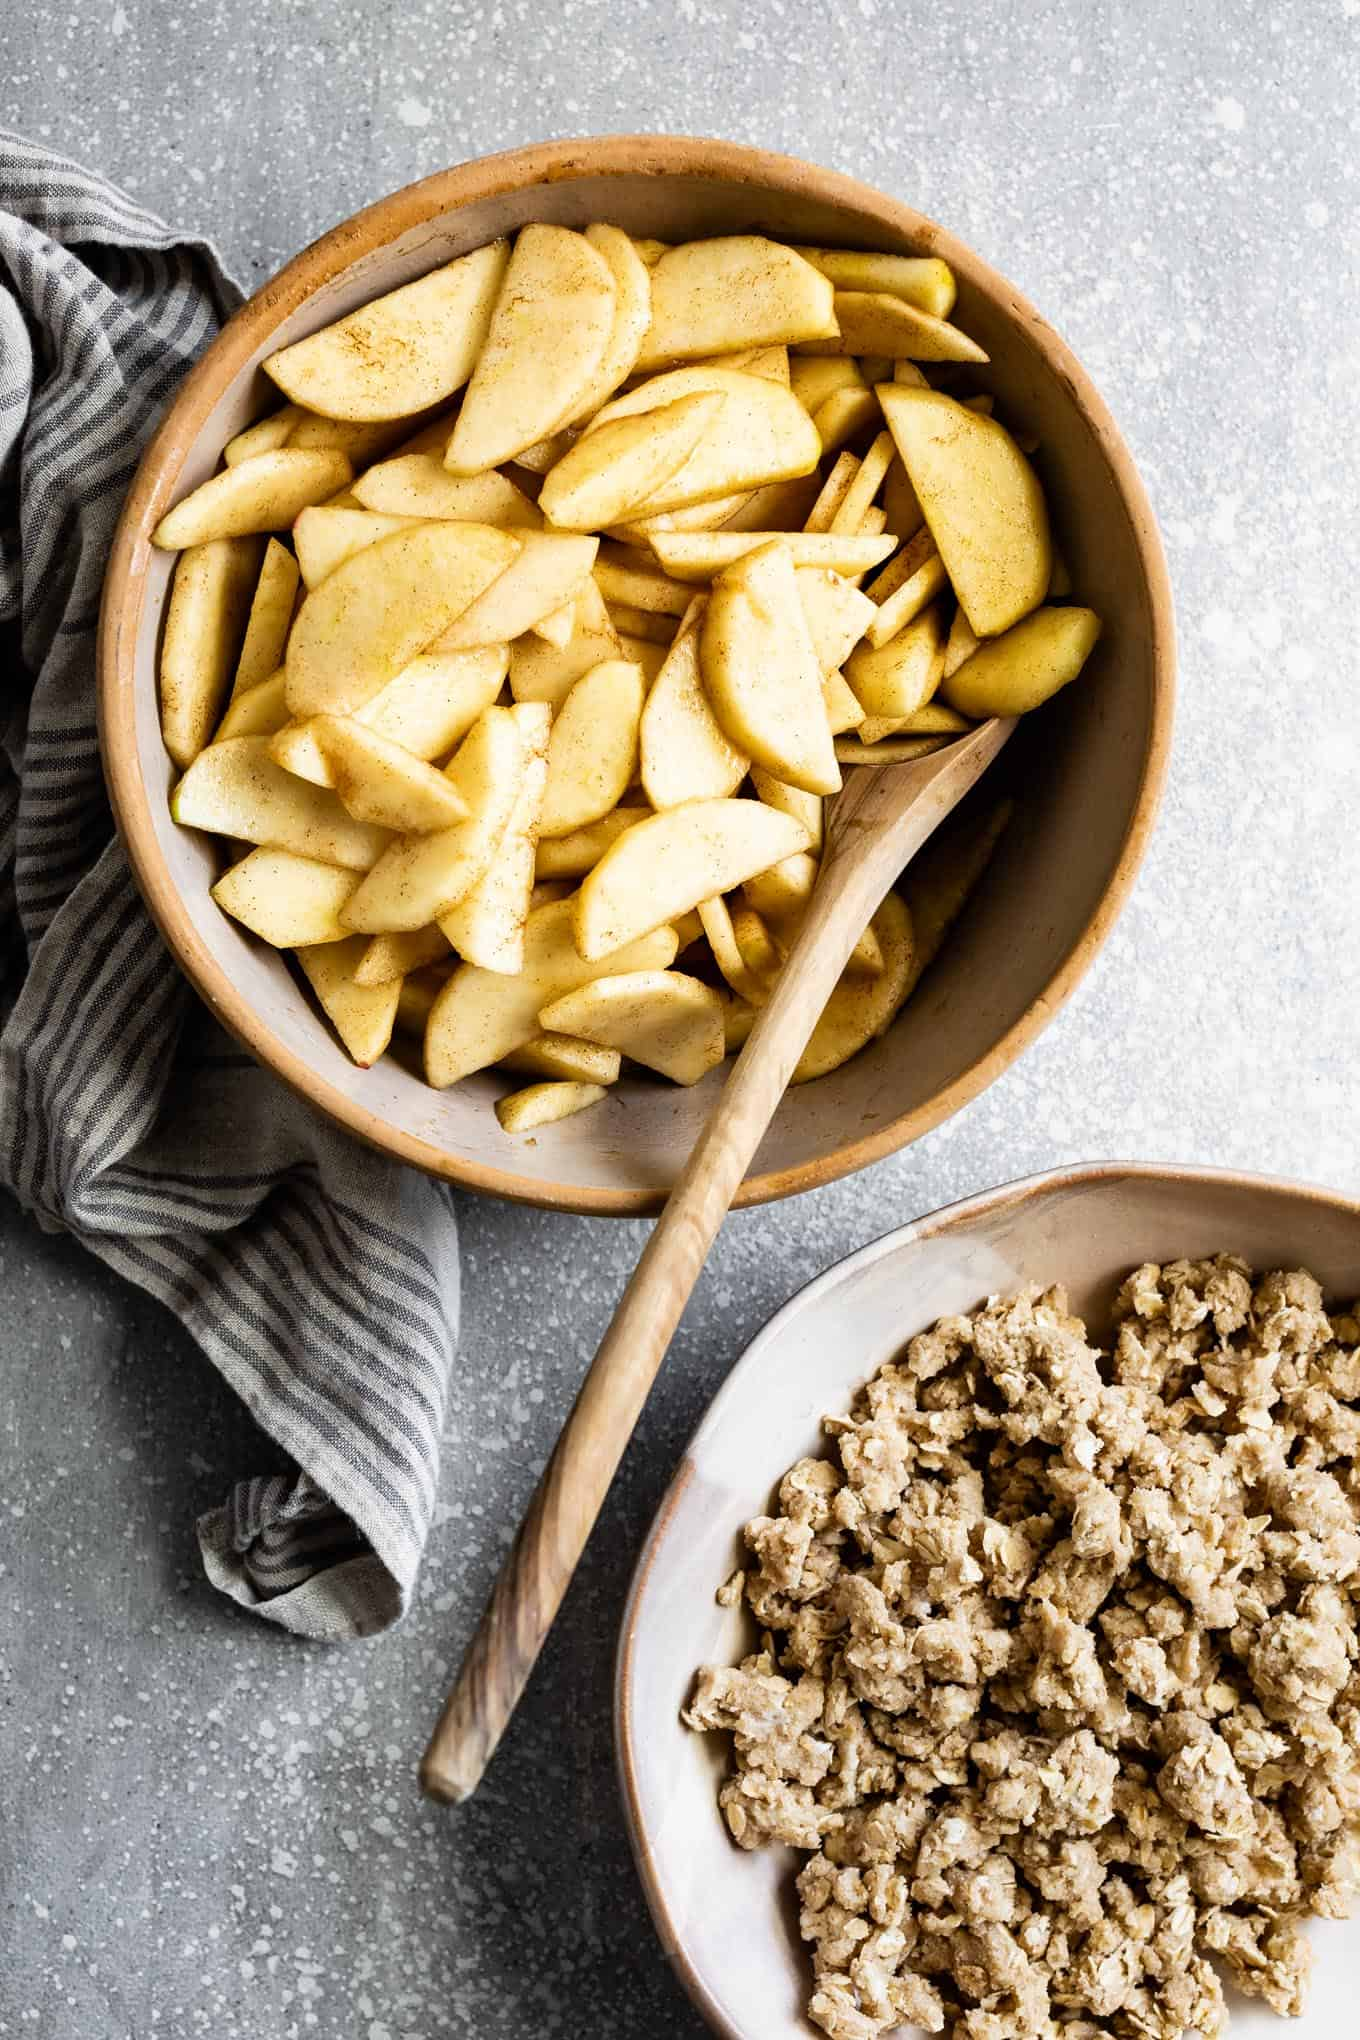 Gluten-Free Apple Crisp with Oats